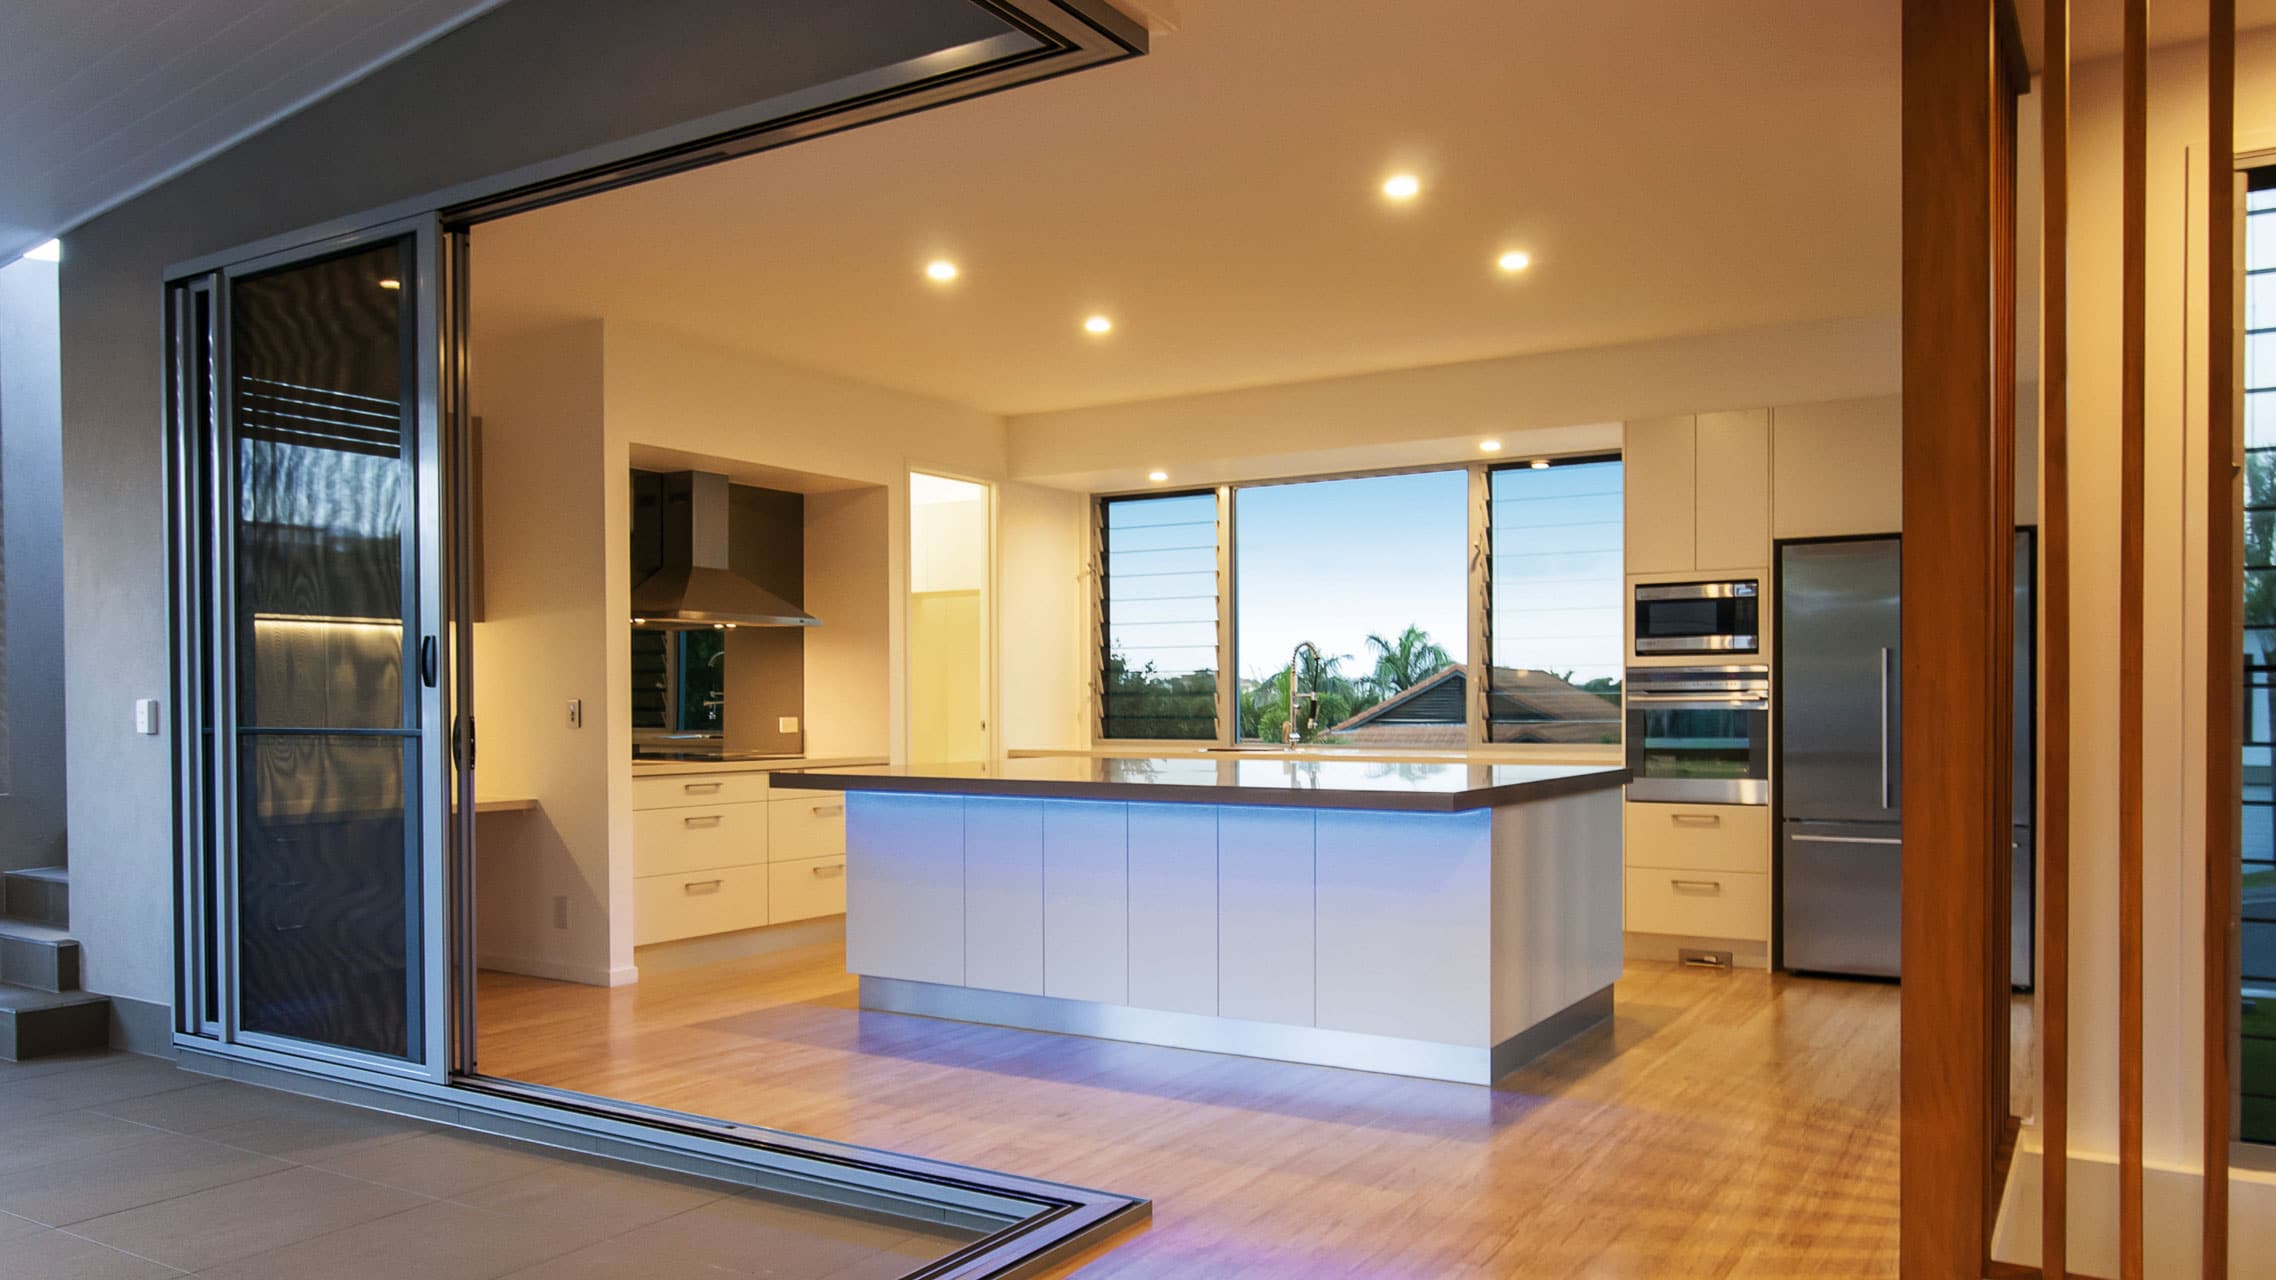 Aluminium Corner Sliding Doors in a kitchen